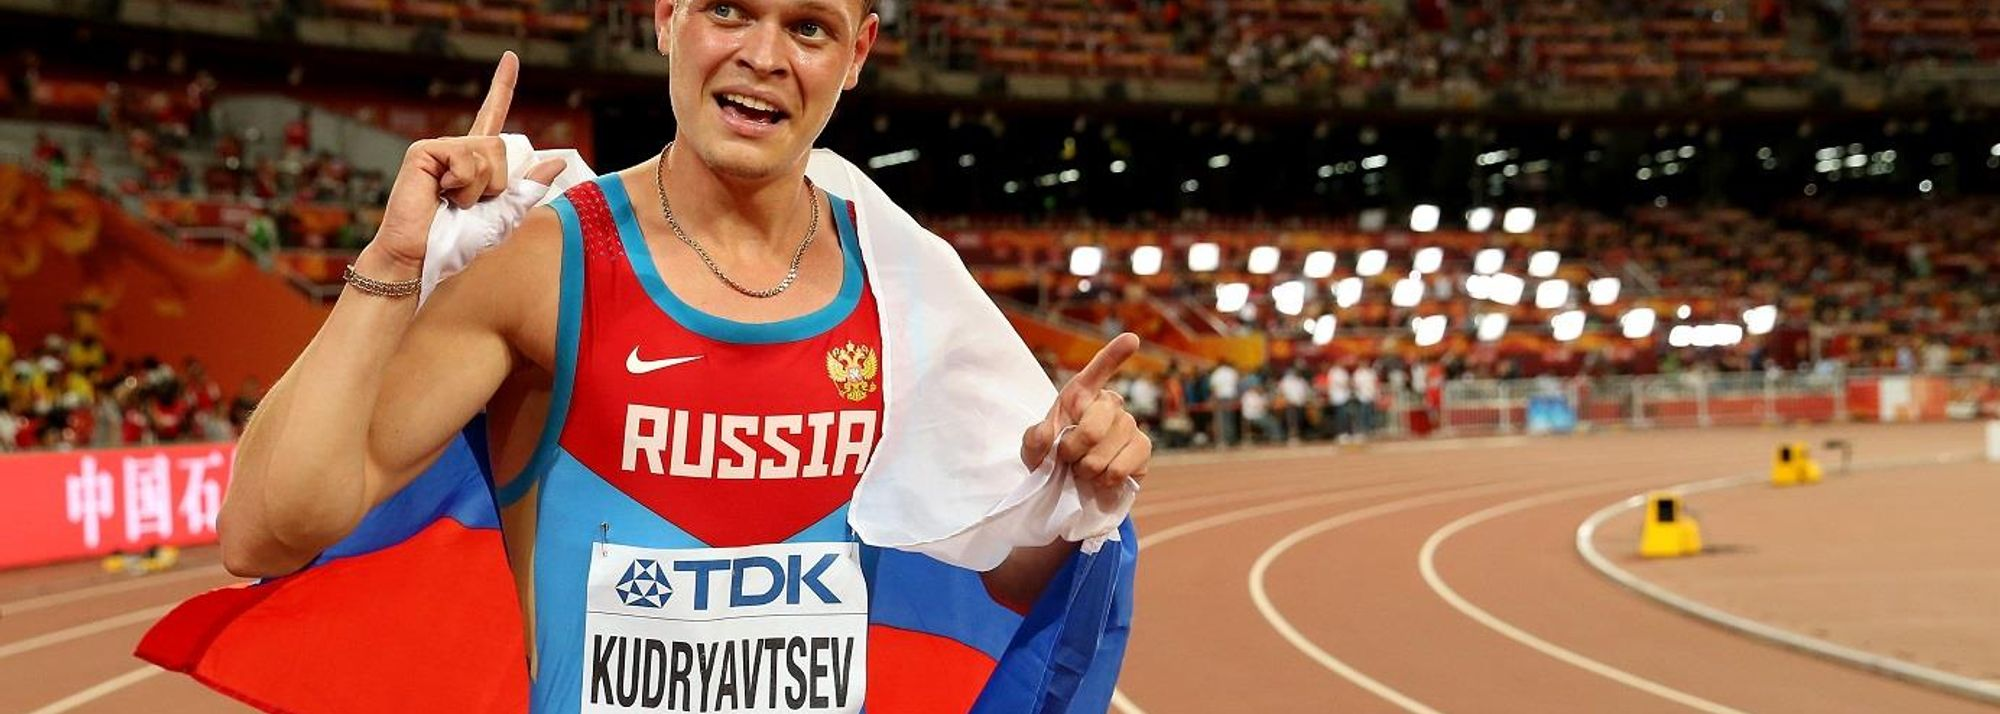 Denis Kudryavtsev is the leader of a group of young and ambitious group of athletes that has awakened interest in the 400m hurdles in Russia after a long hiatus.